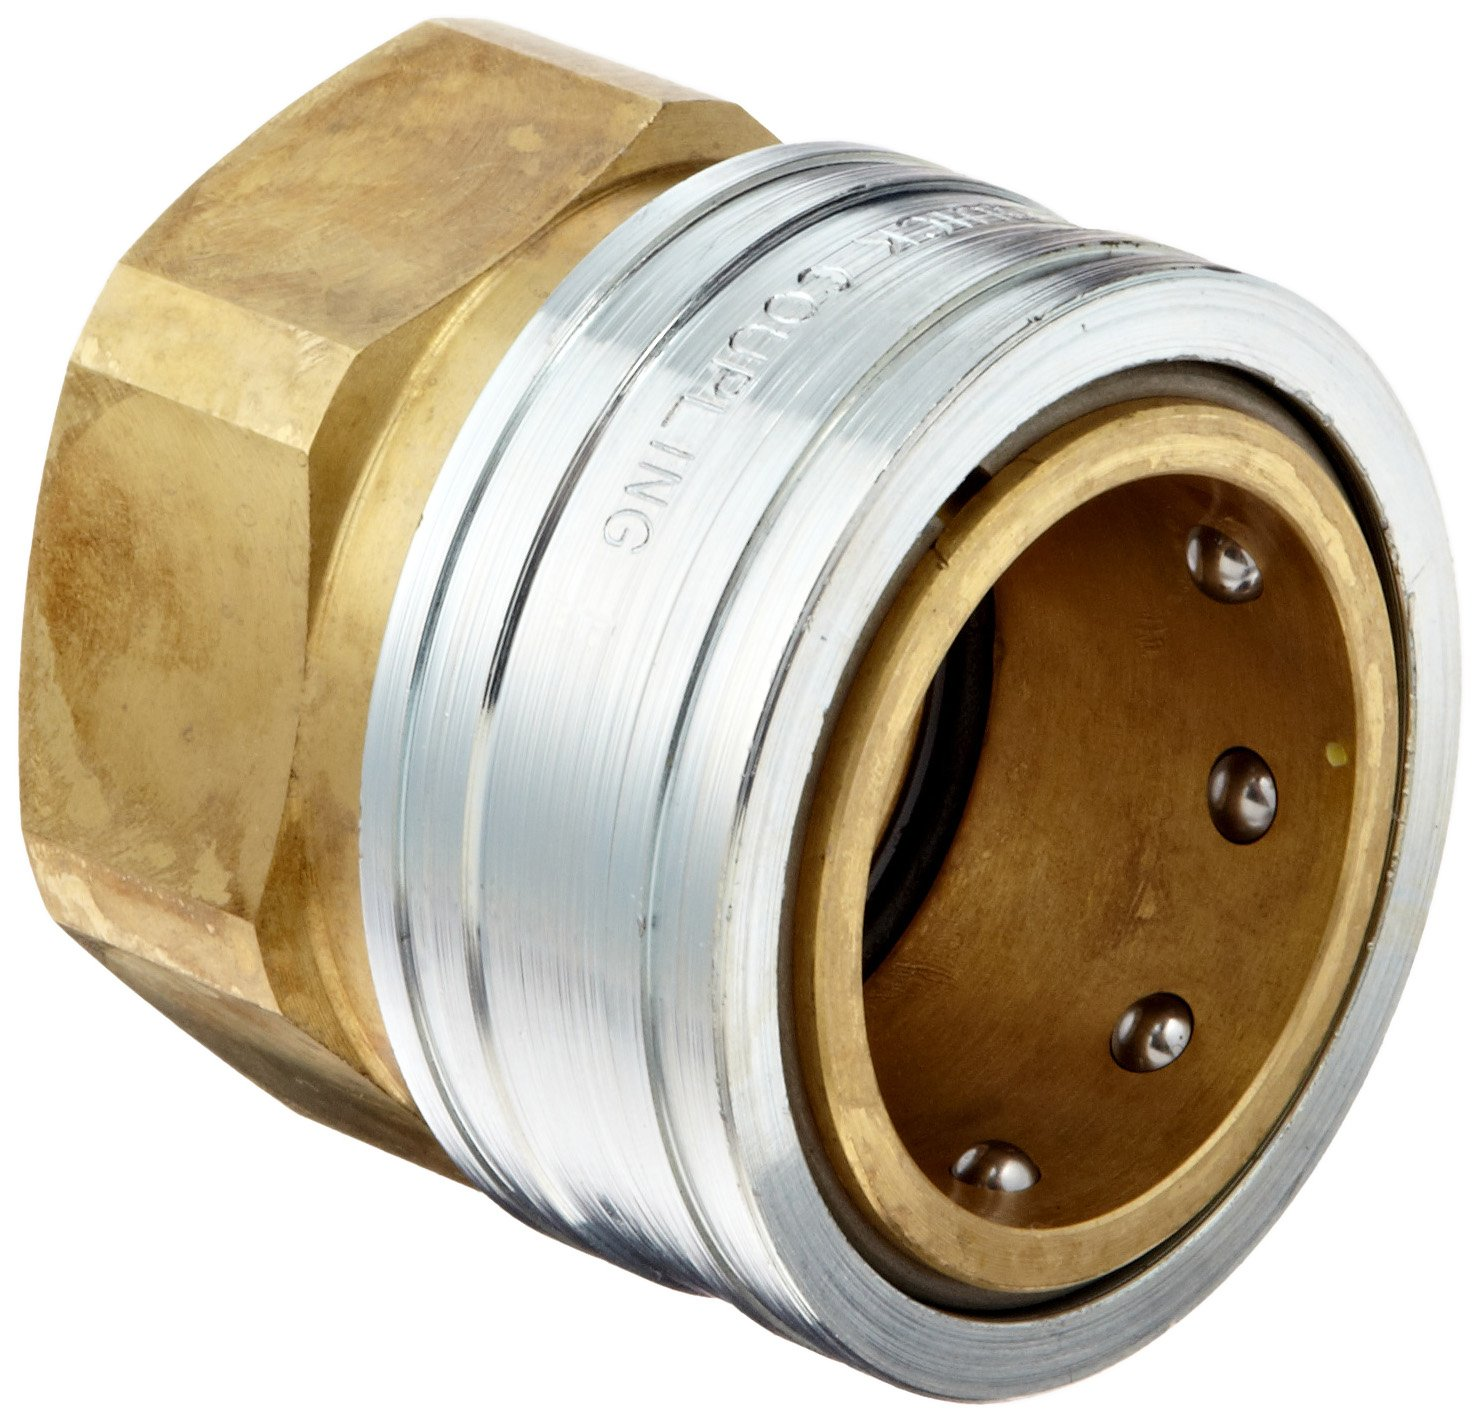 Dixon STFC10 Brass Hydraulic Quick-Connect Fitting, 1-1/4'' Female Coupling x 1-1/4''-11-1/2 NPTF Female by Dixon Valve & Coupling (Image #1)